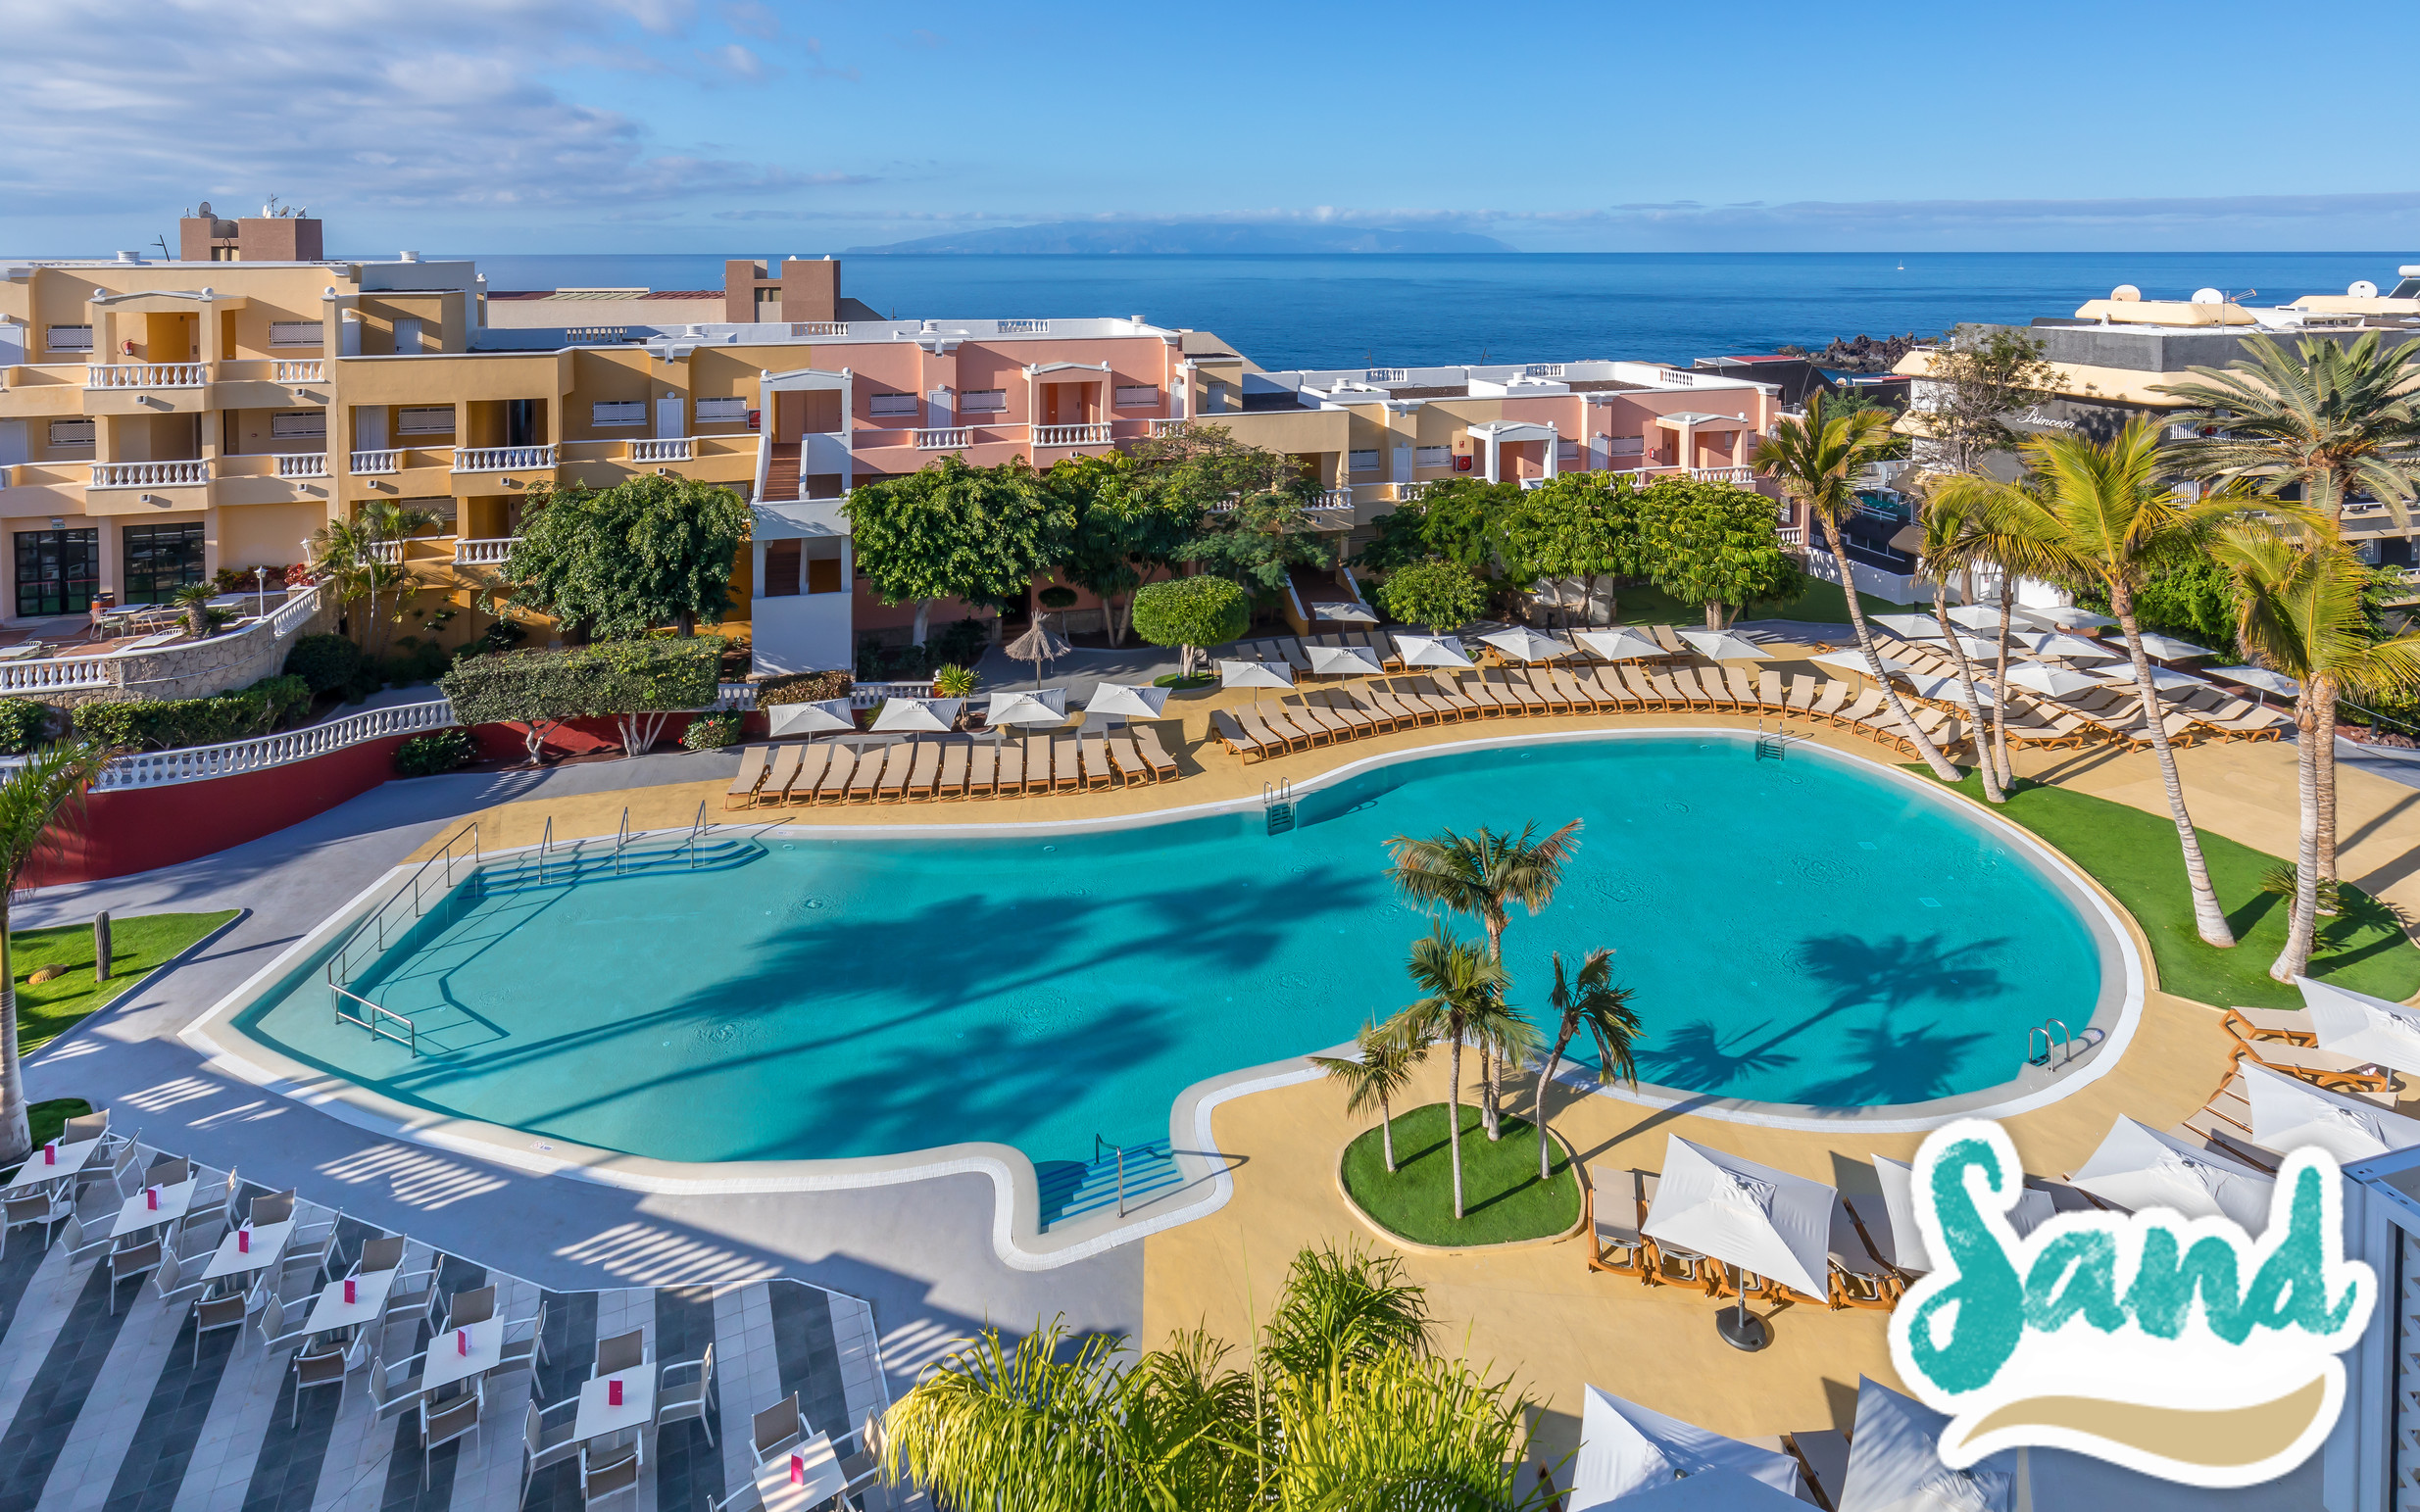 Spagna - Isole Canarie - Tenerife